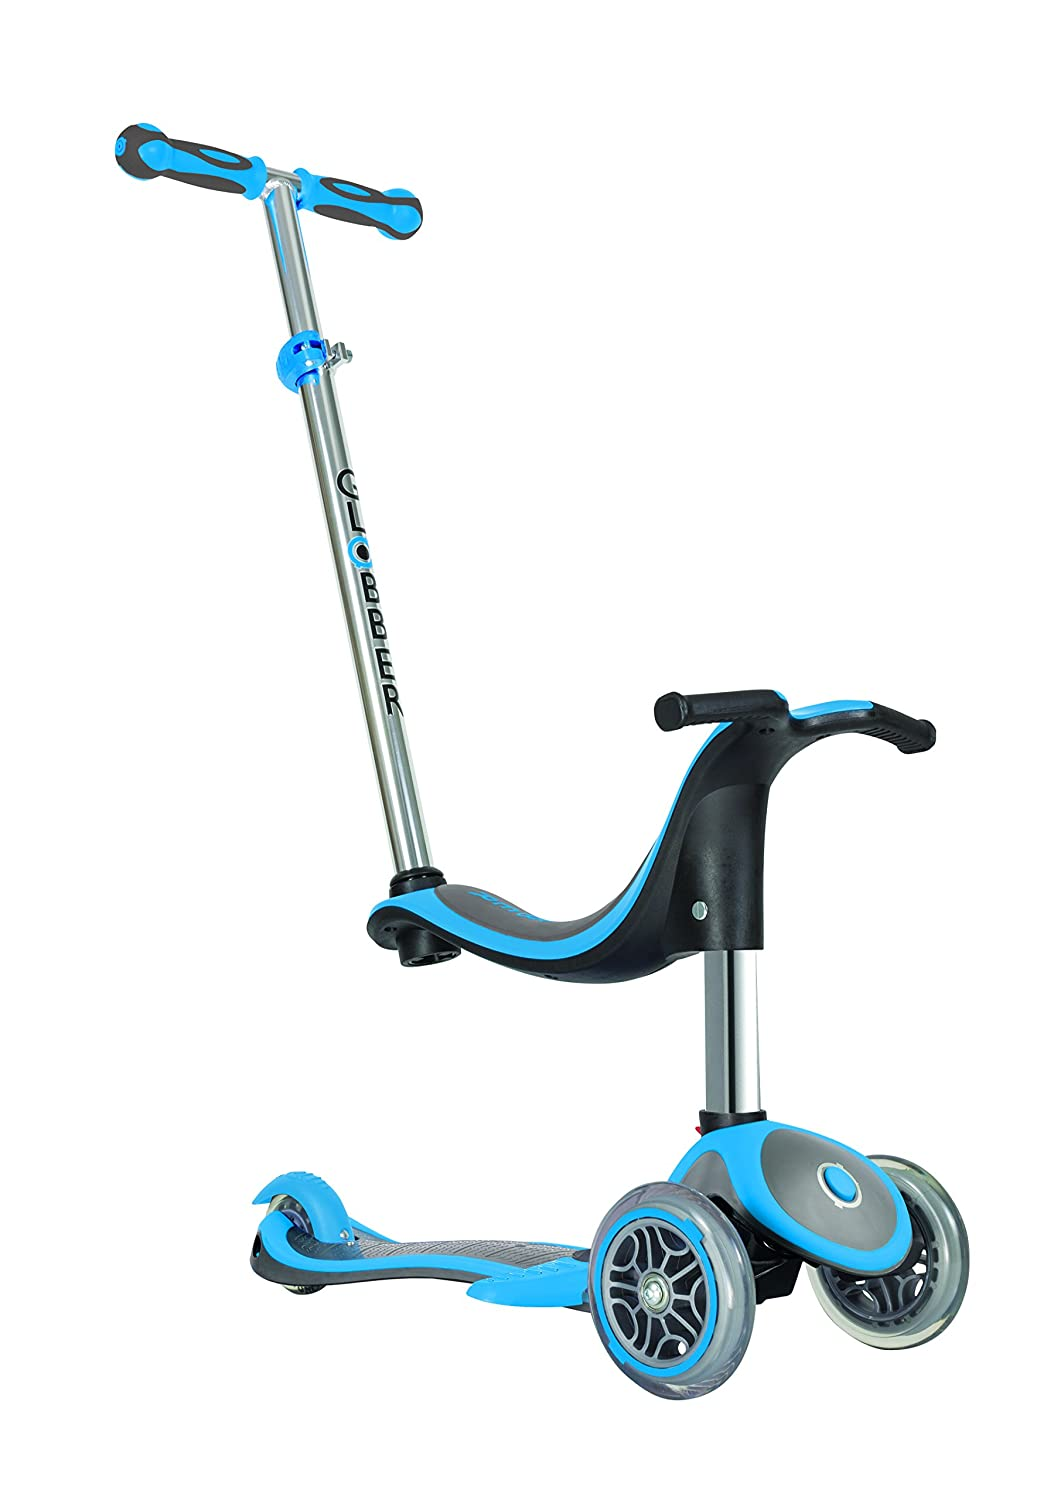 Globber Kinder EVO 4 in1 Plus mit Licht bis Rädern Scooter, Kinder, Evo 4-in-1 Plus with Light Up Wheels, neonblau 454-130